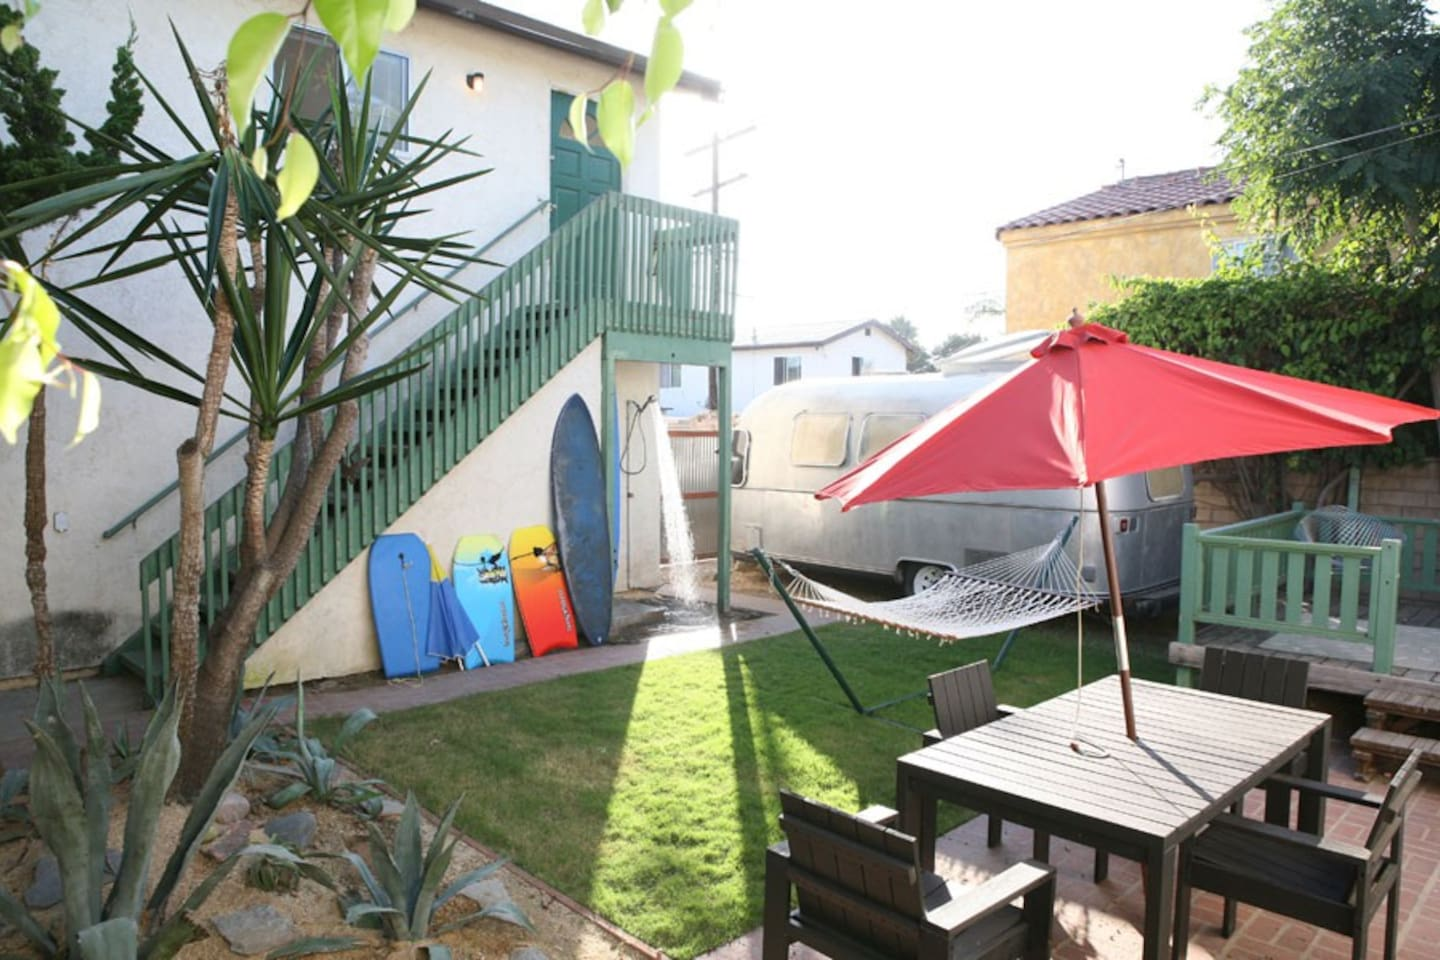 2 units on same property with shared beach toys + ample parking